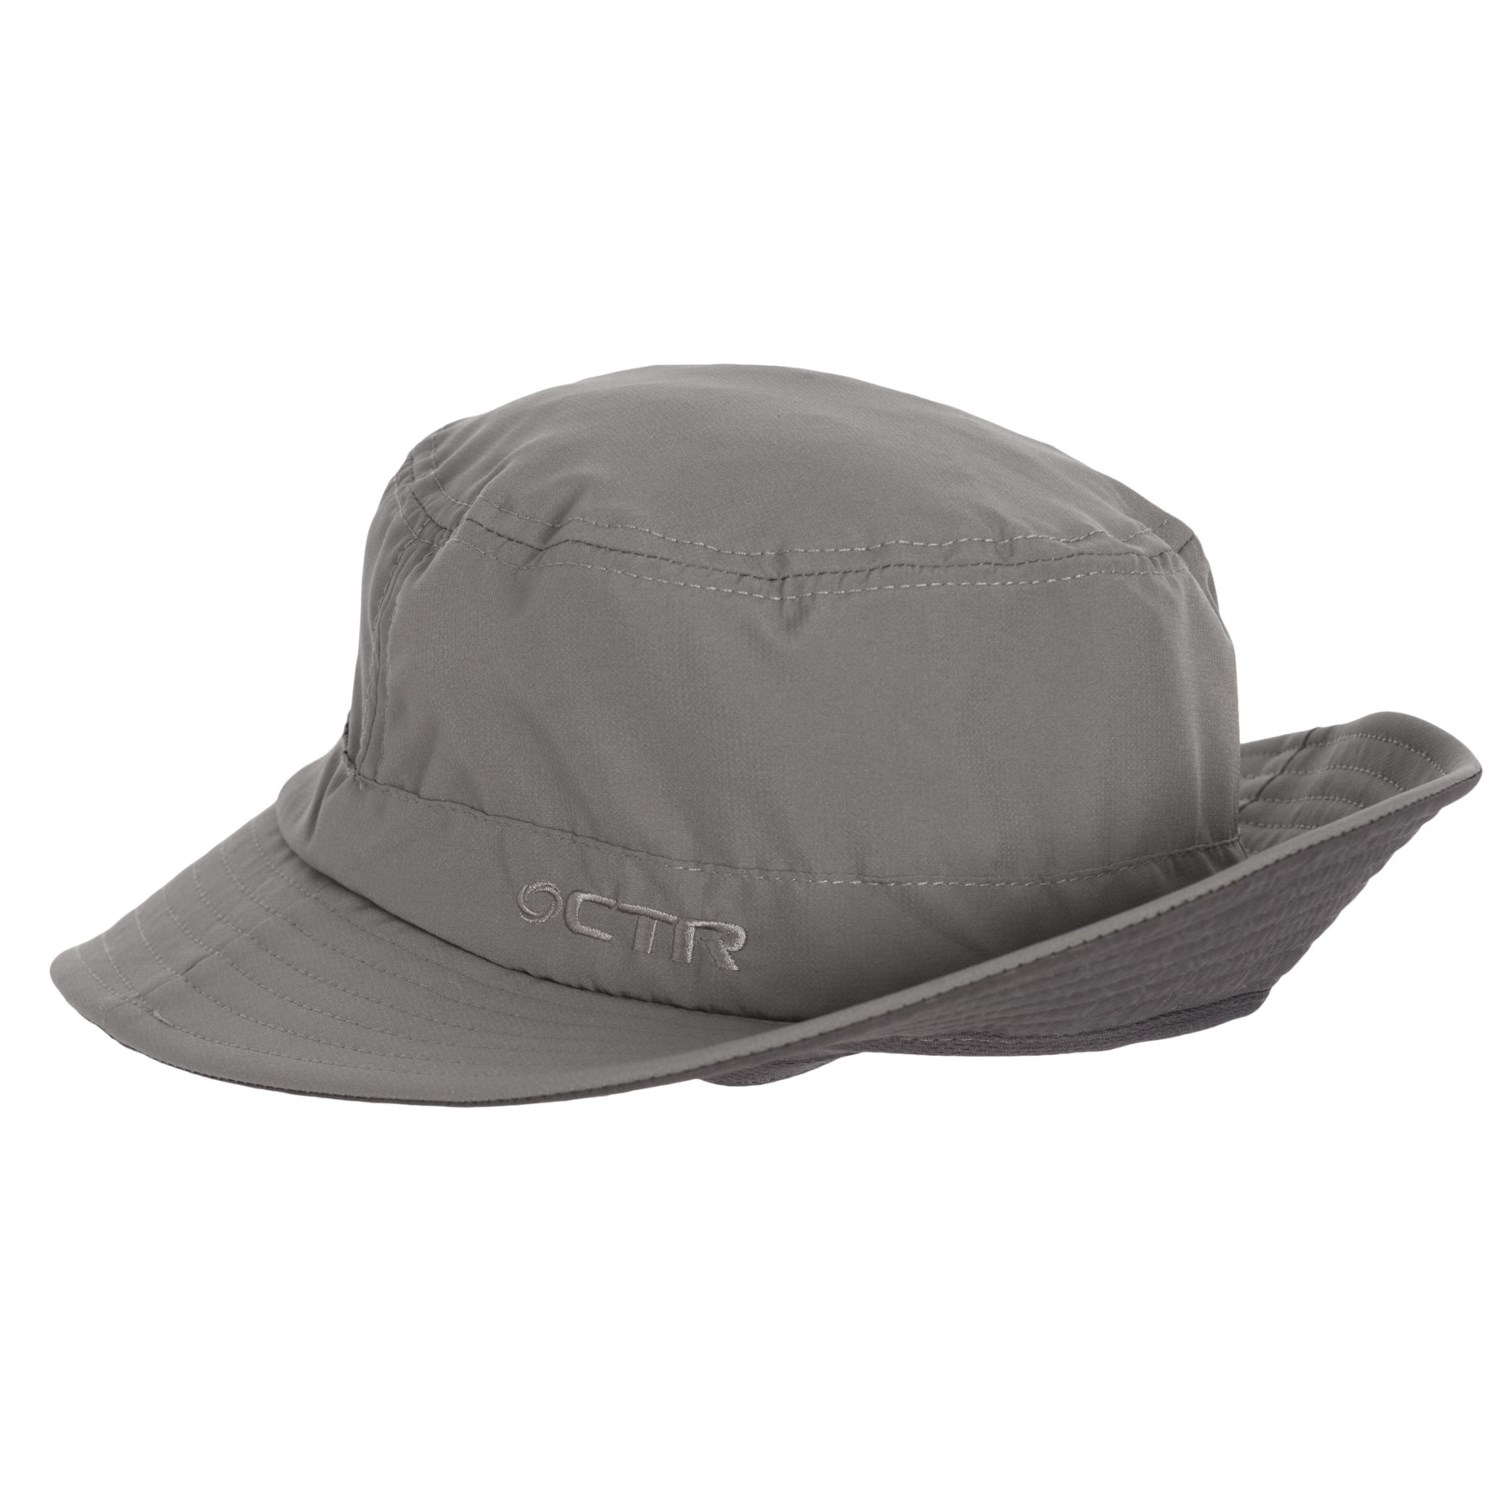 CTR Summit Bucket Hat (For Men and Women) - Save 27% 9b551c08d246